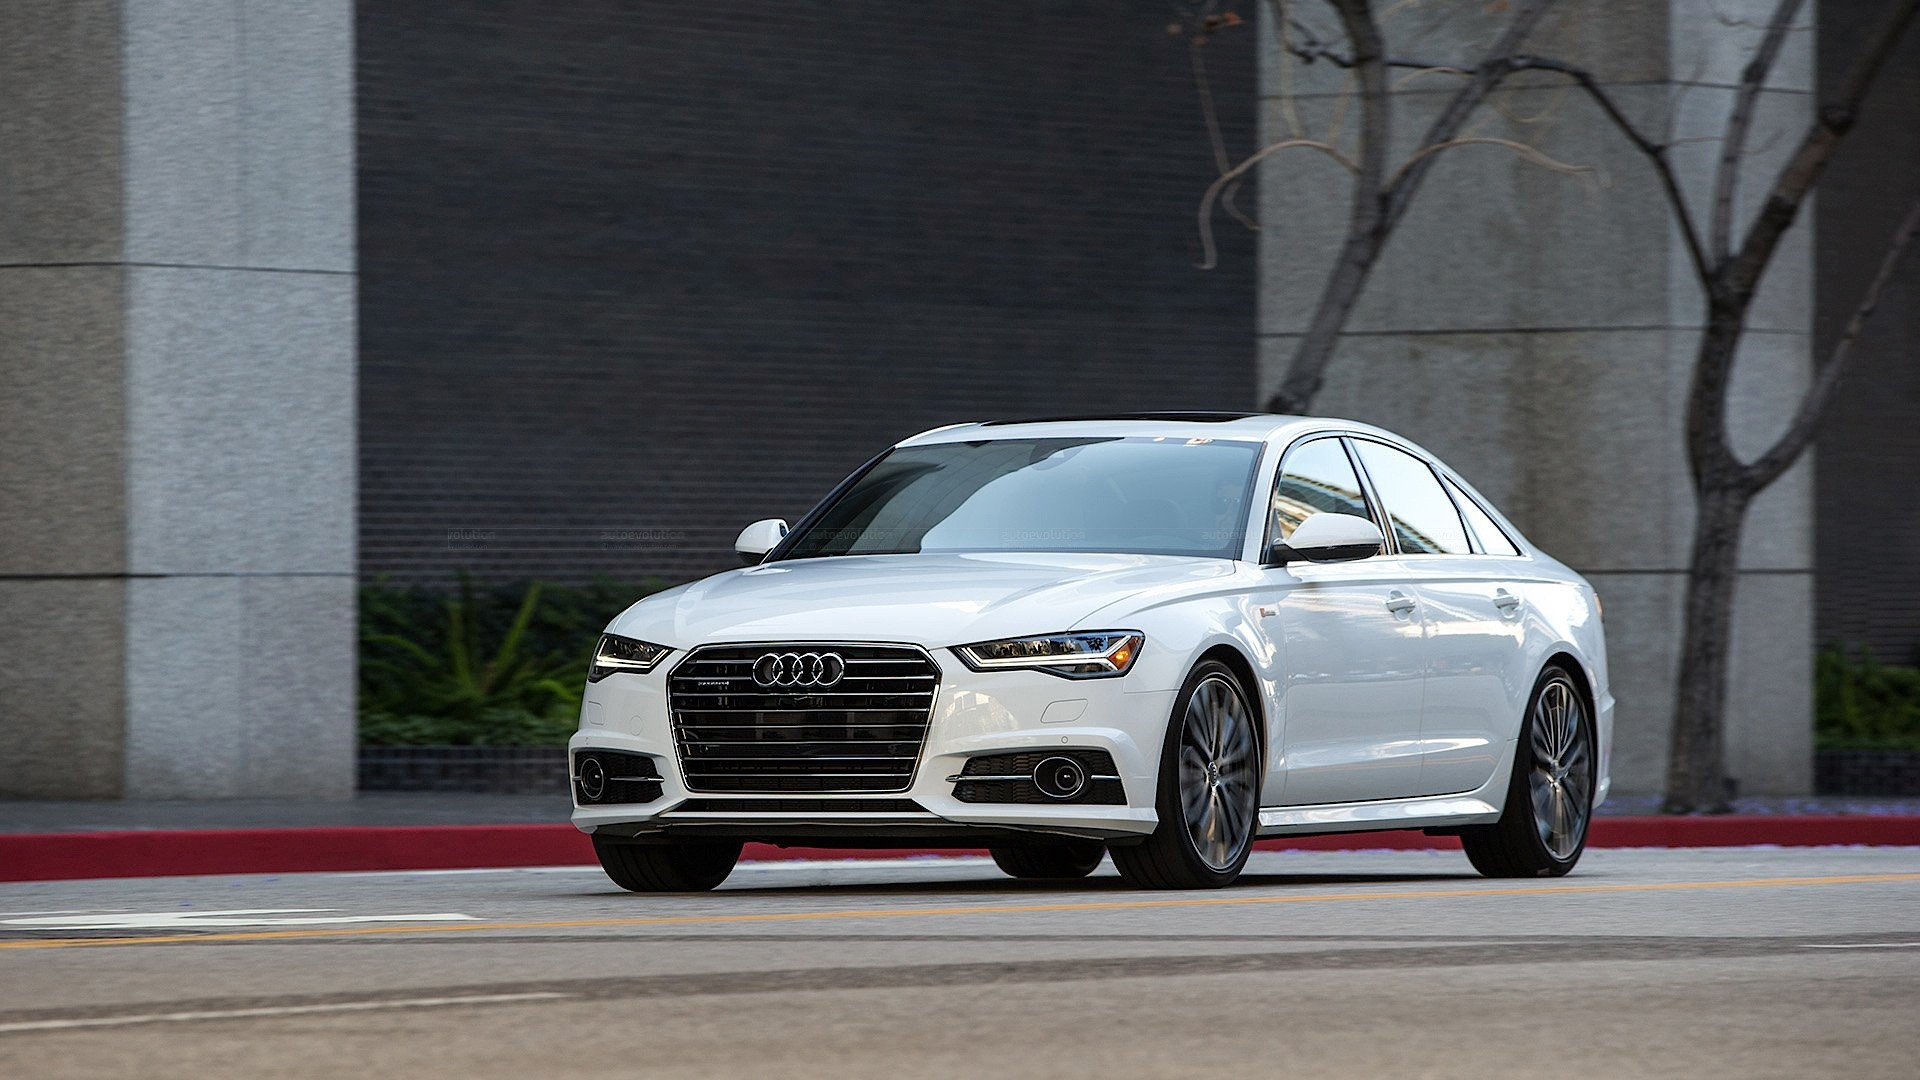 2016 audi a6 and a7 tfsi quattro look rather handsome in us spec photos